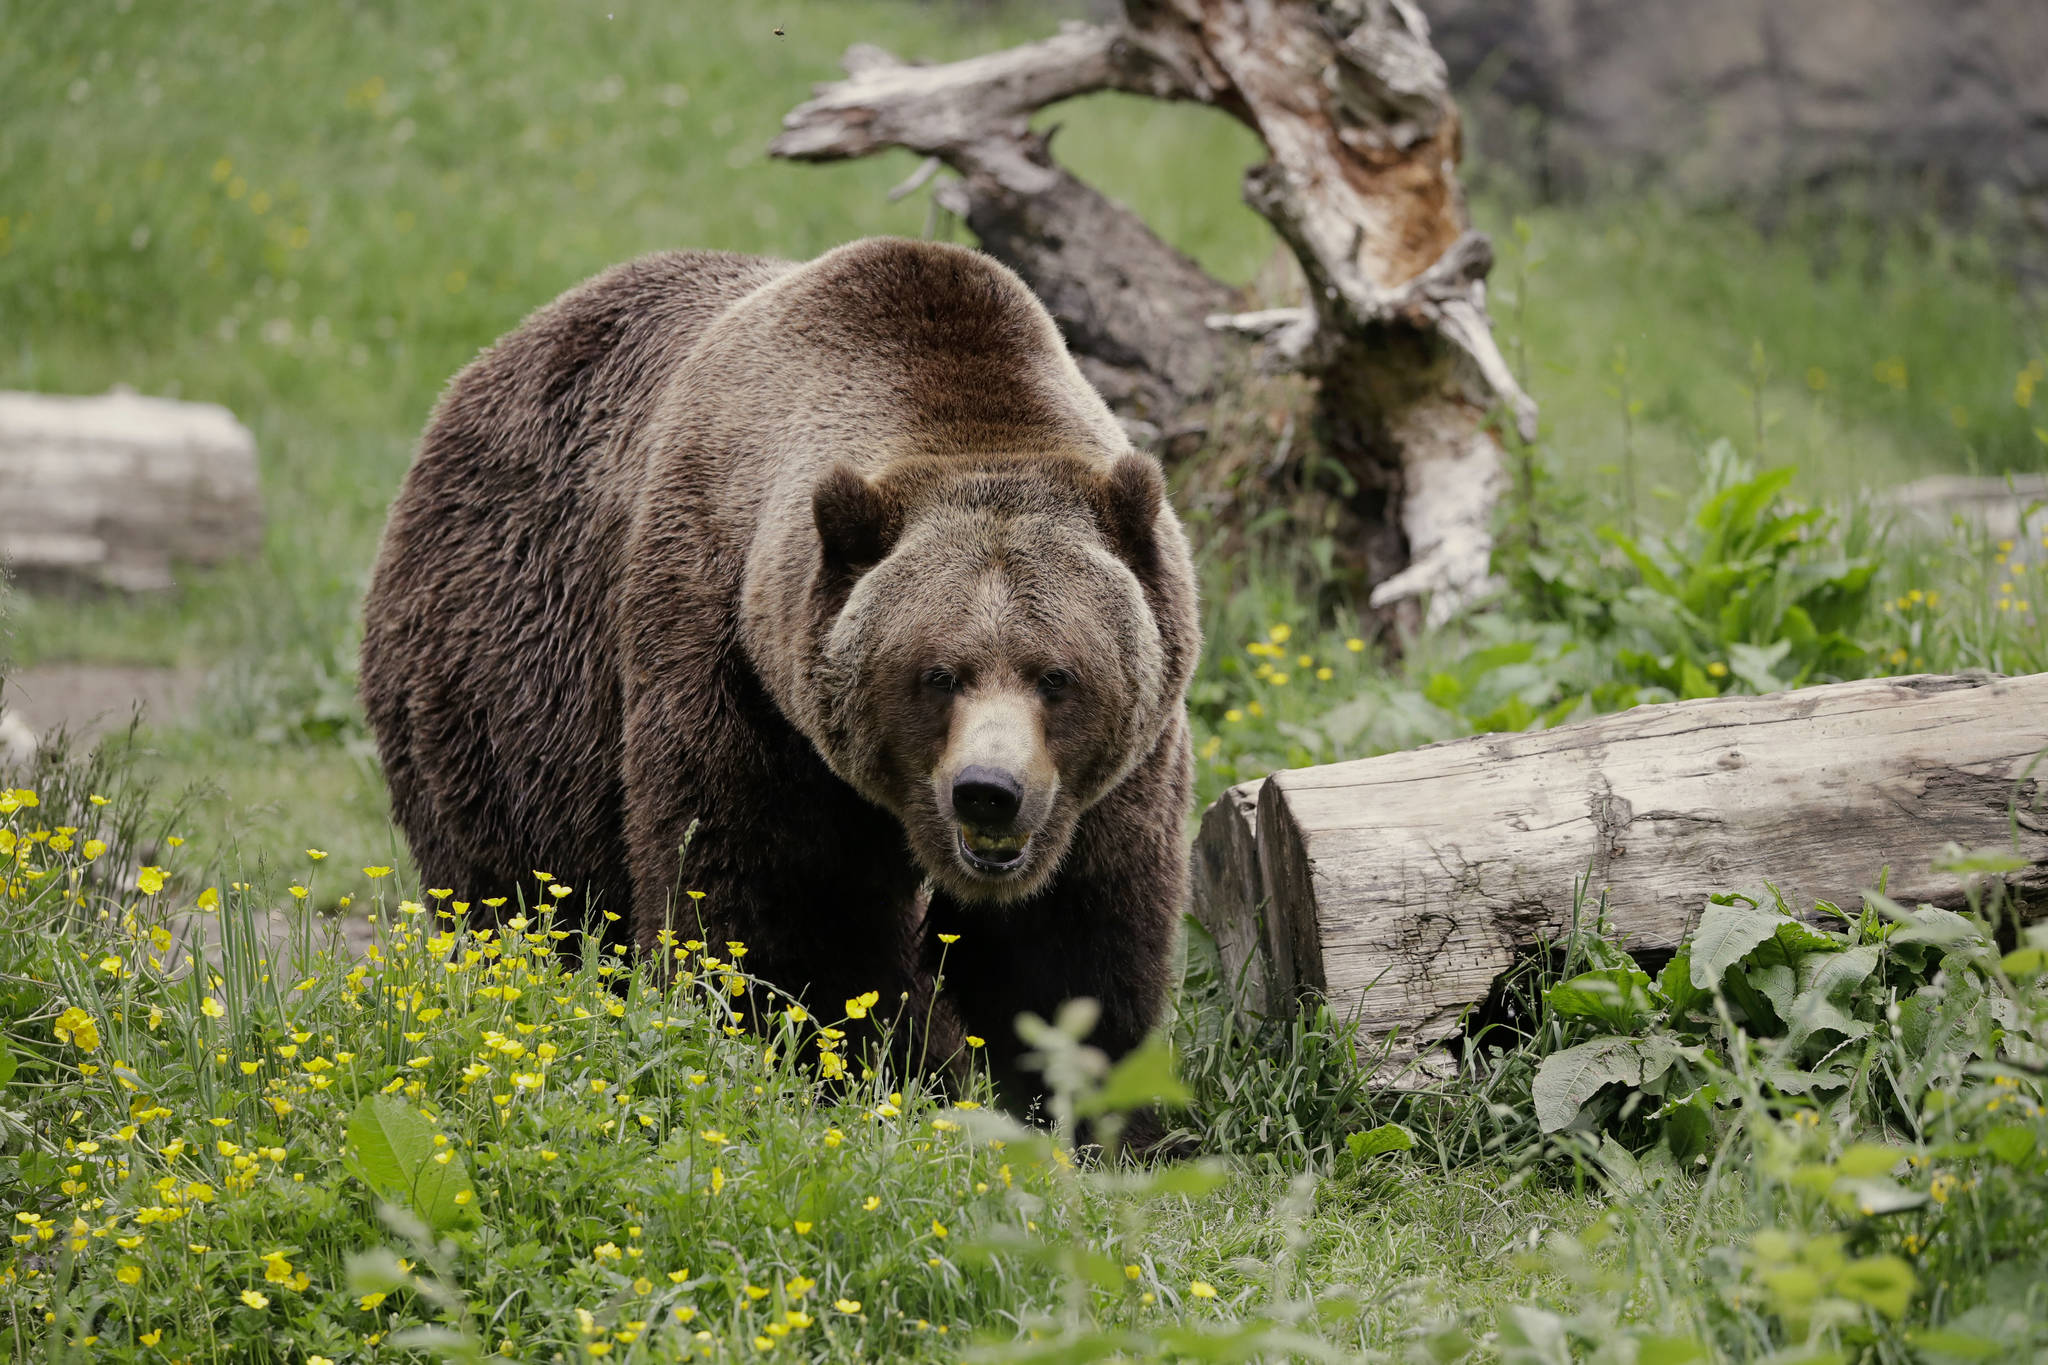 A grizzly bear roams an exhibit at the Woodland Park Zoo, closed for nearly three months because of the coronavirus outbreak in Seattle. Grizzly bears once roamed the rugged landscape of the North Cascades in Washington state but few have been sighted in recent decades. The federal government is scrapping plans to reintroduce grizzly bears to the North Cascades ecosystem. (AP Photo/Elaine Thompson, File)